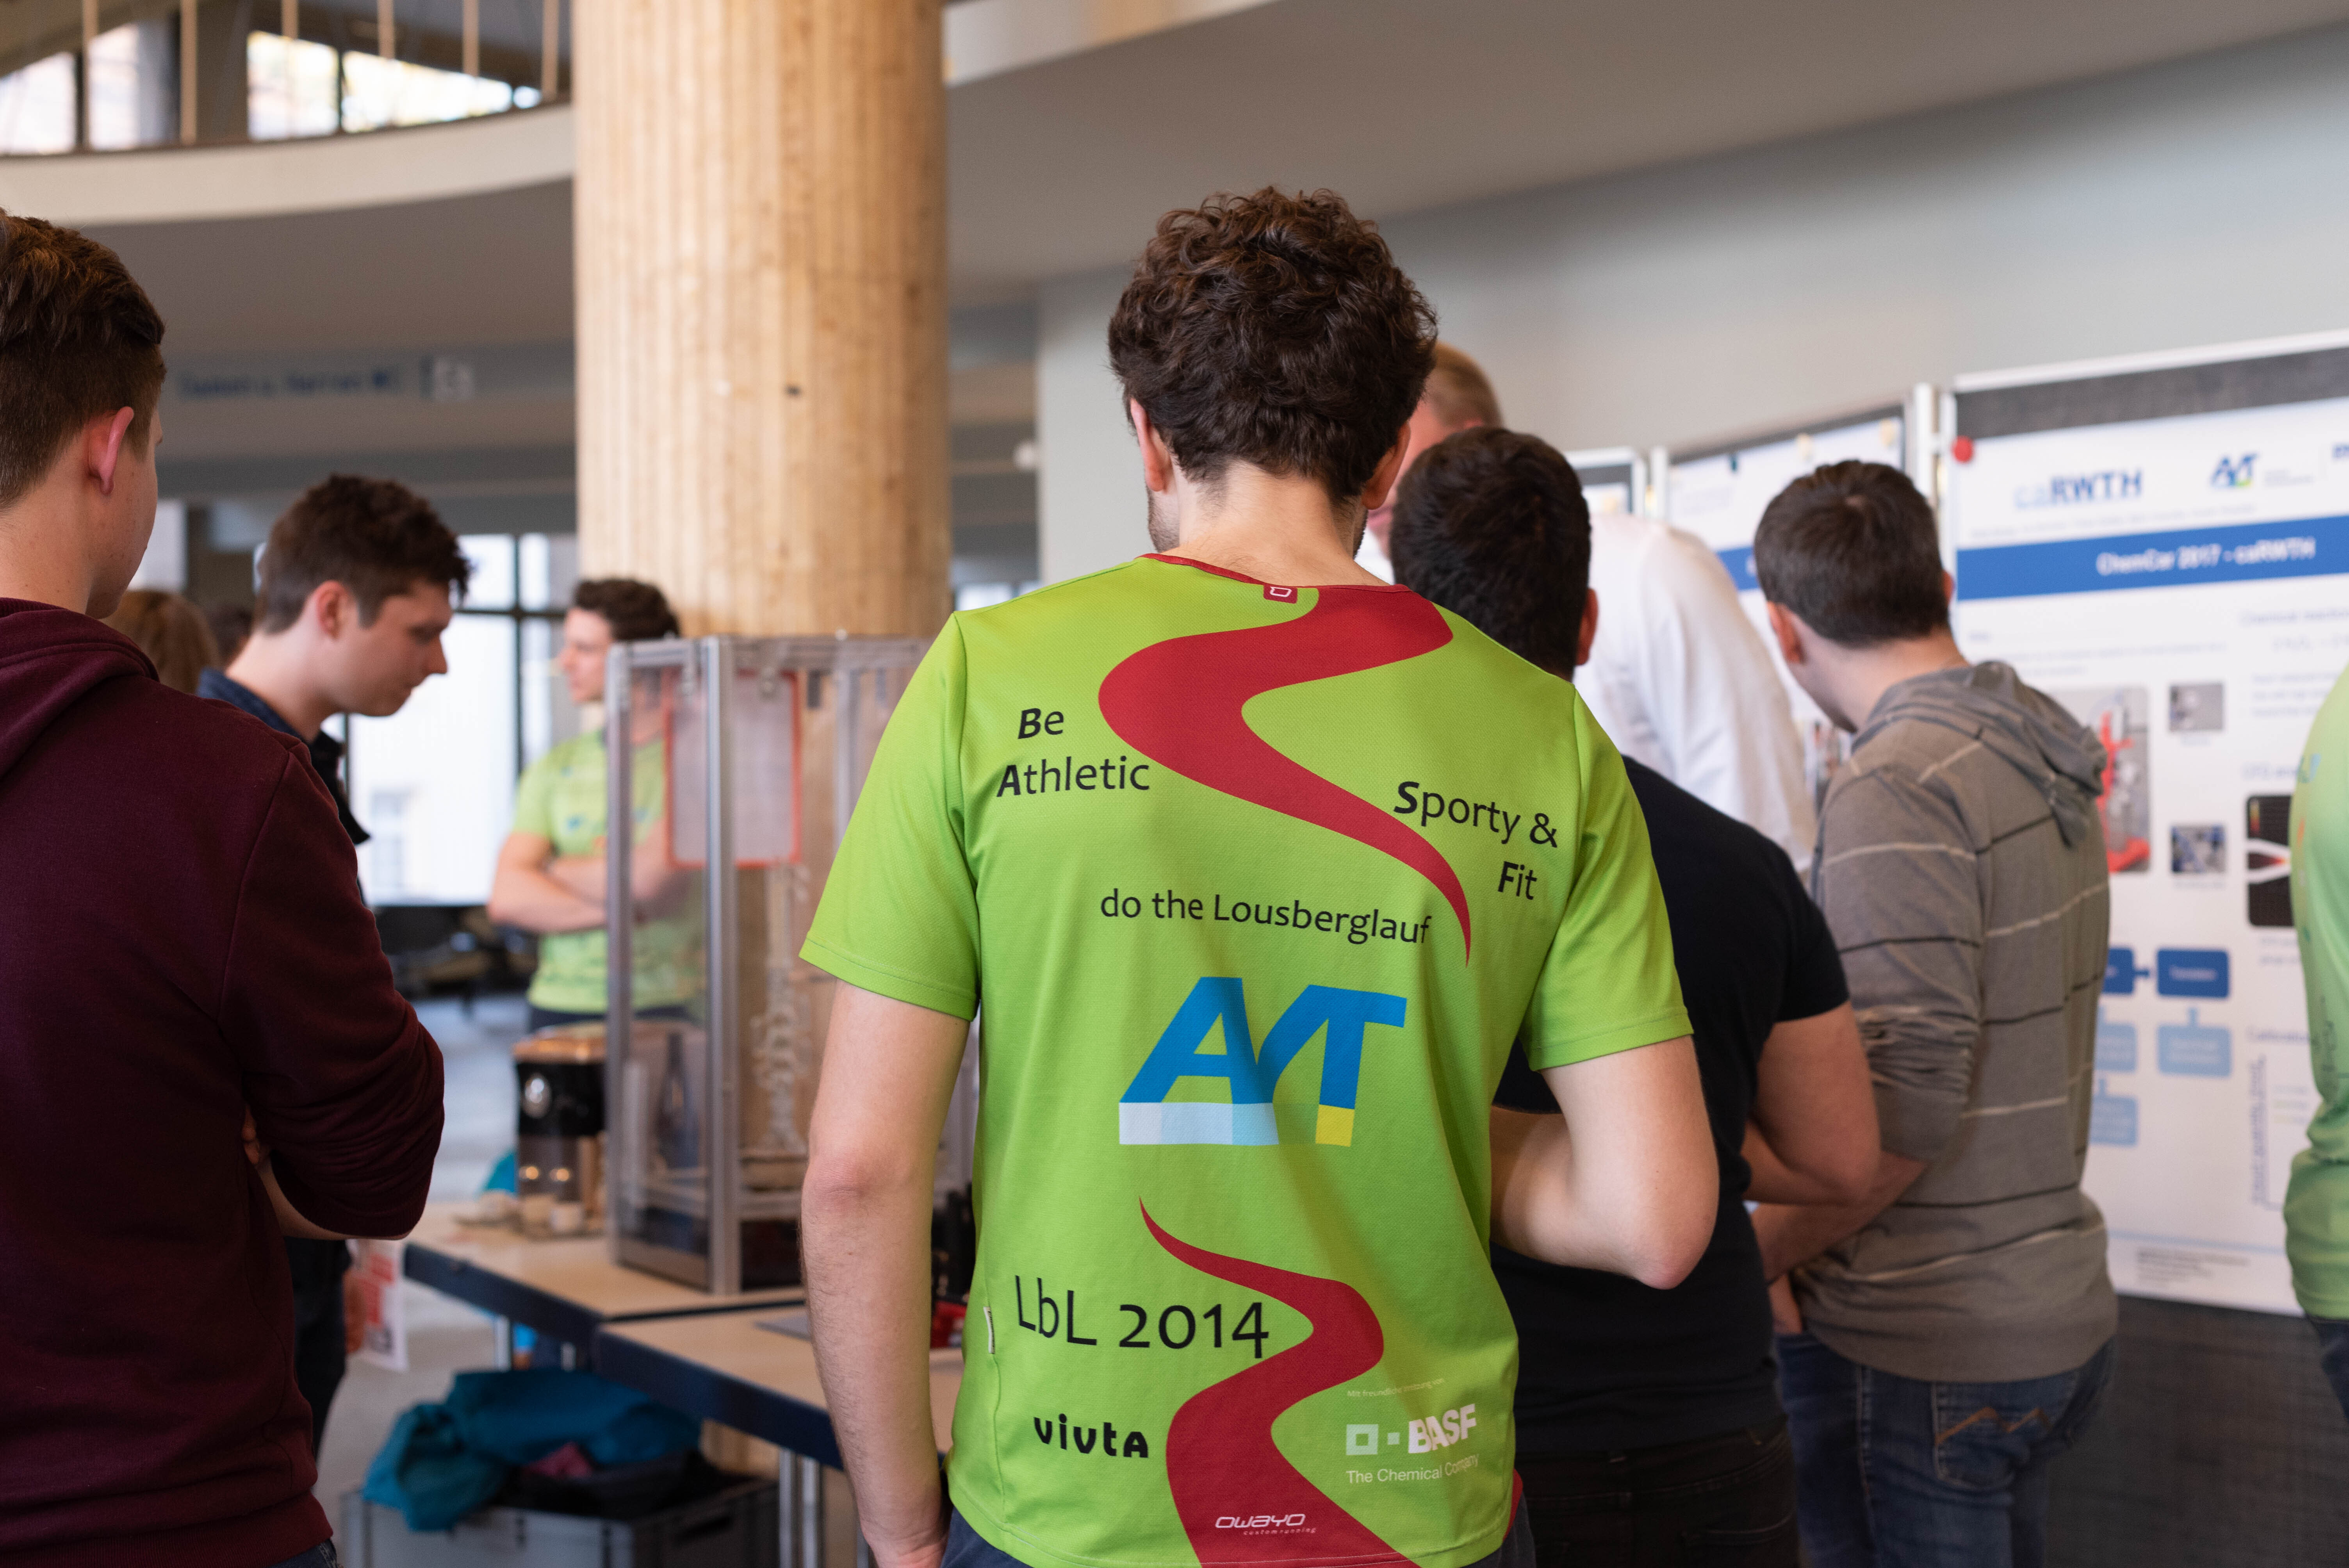 AVT inspires new students